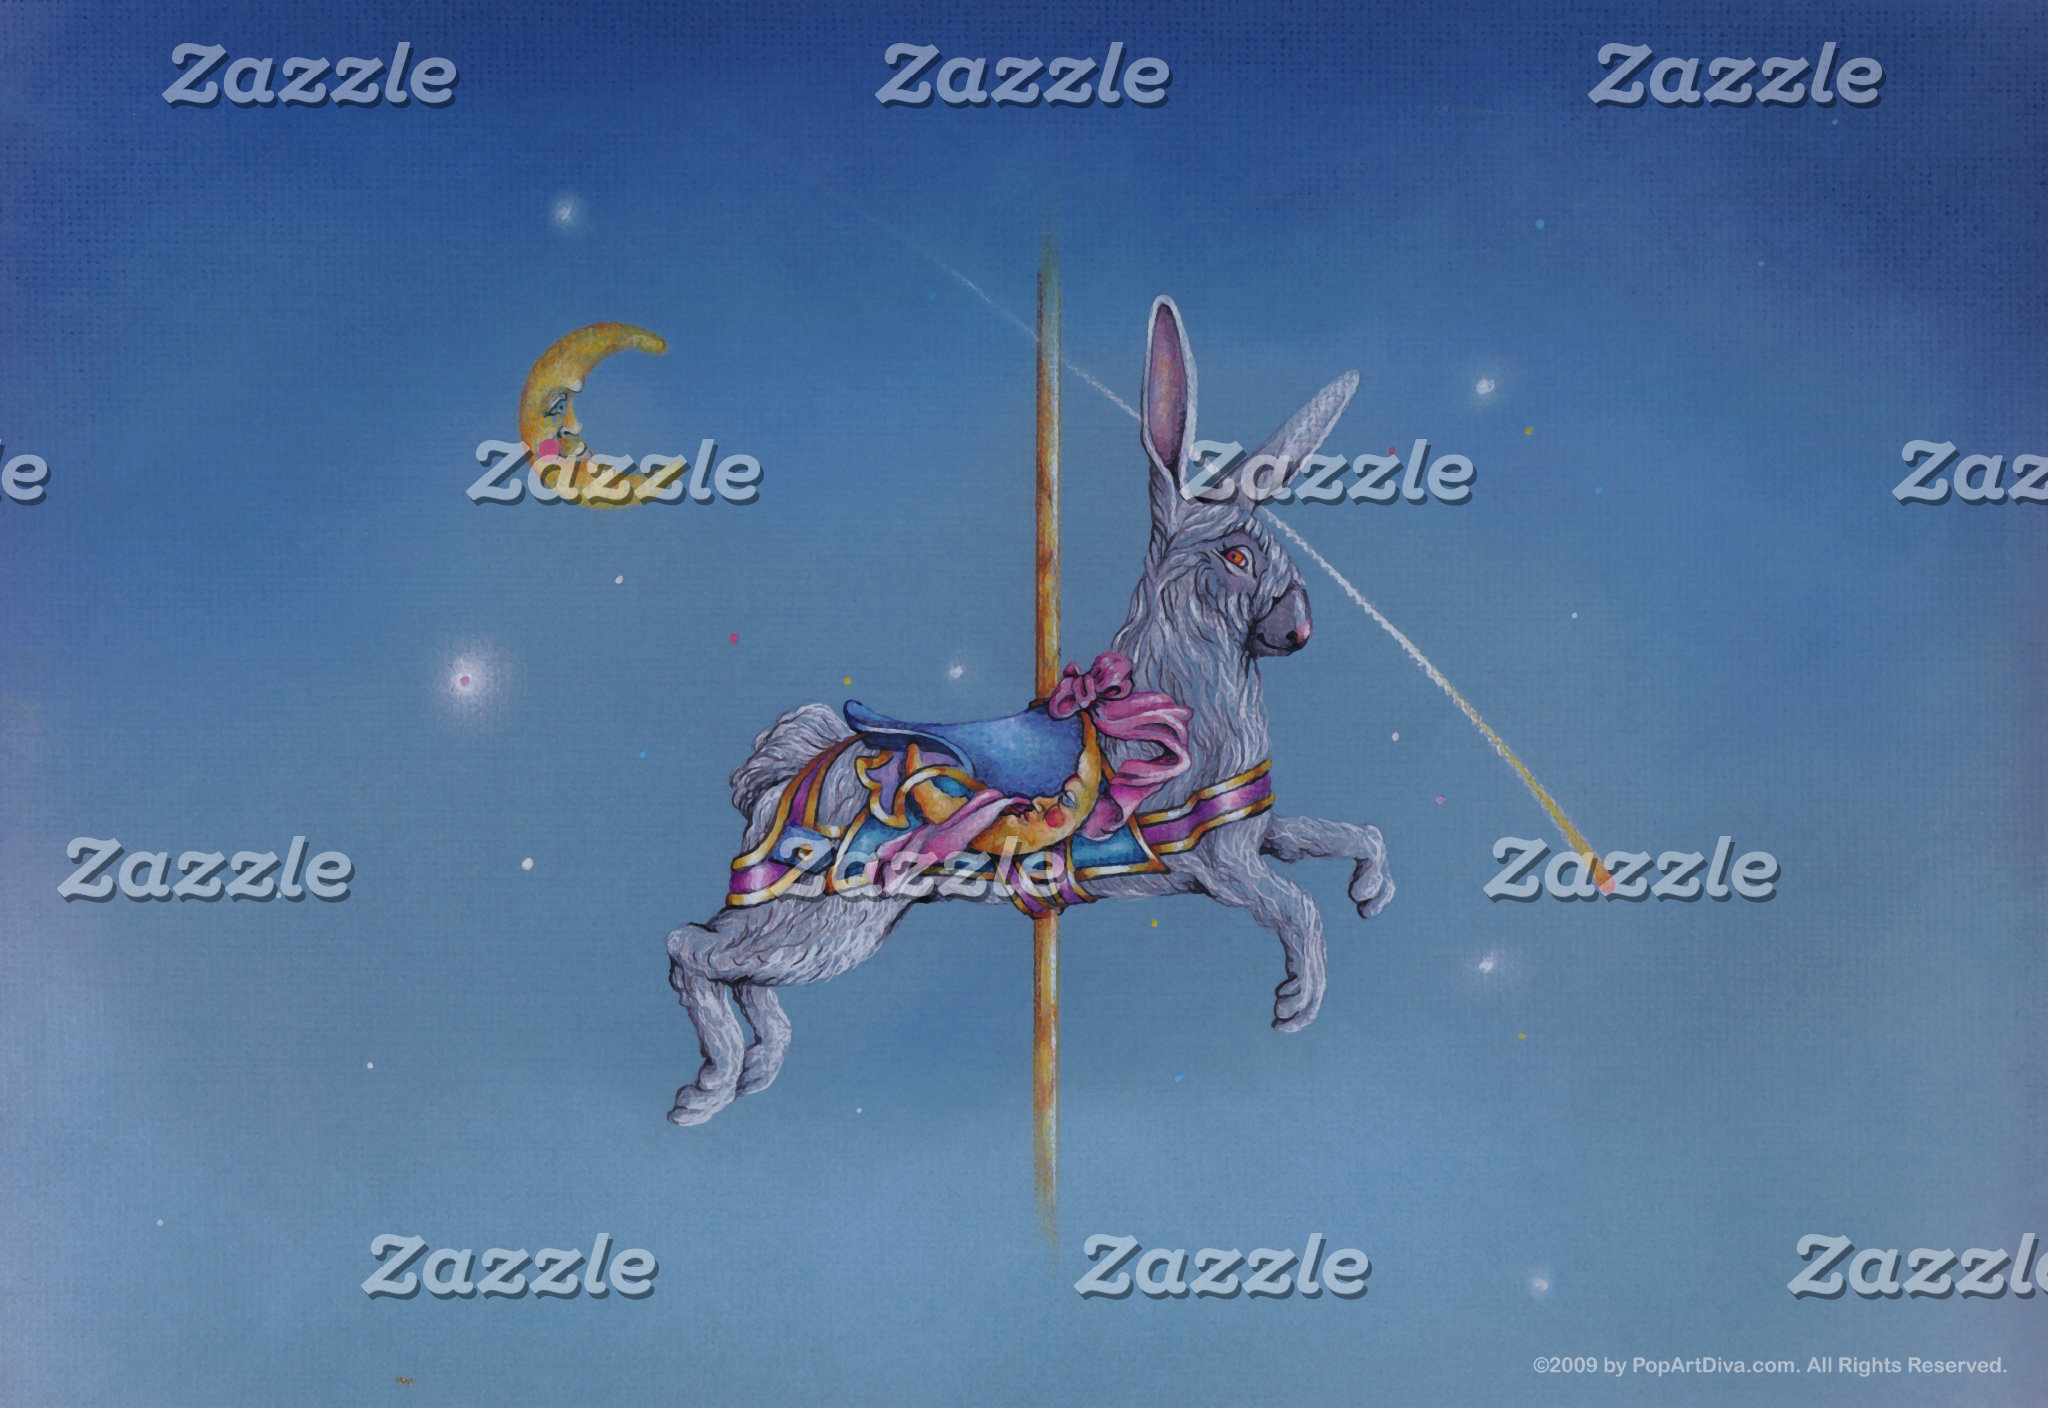 Cosmic Rabbit Carousel